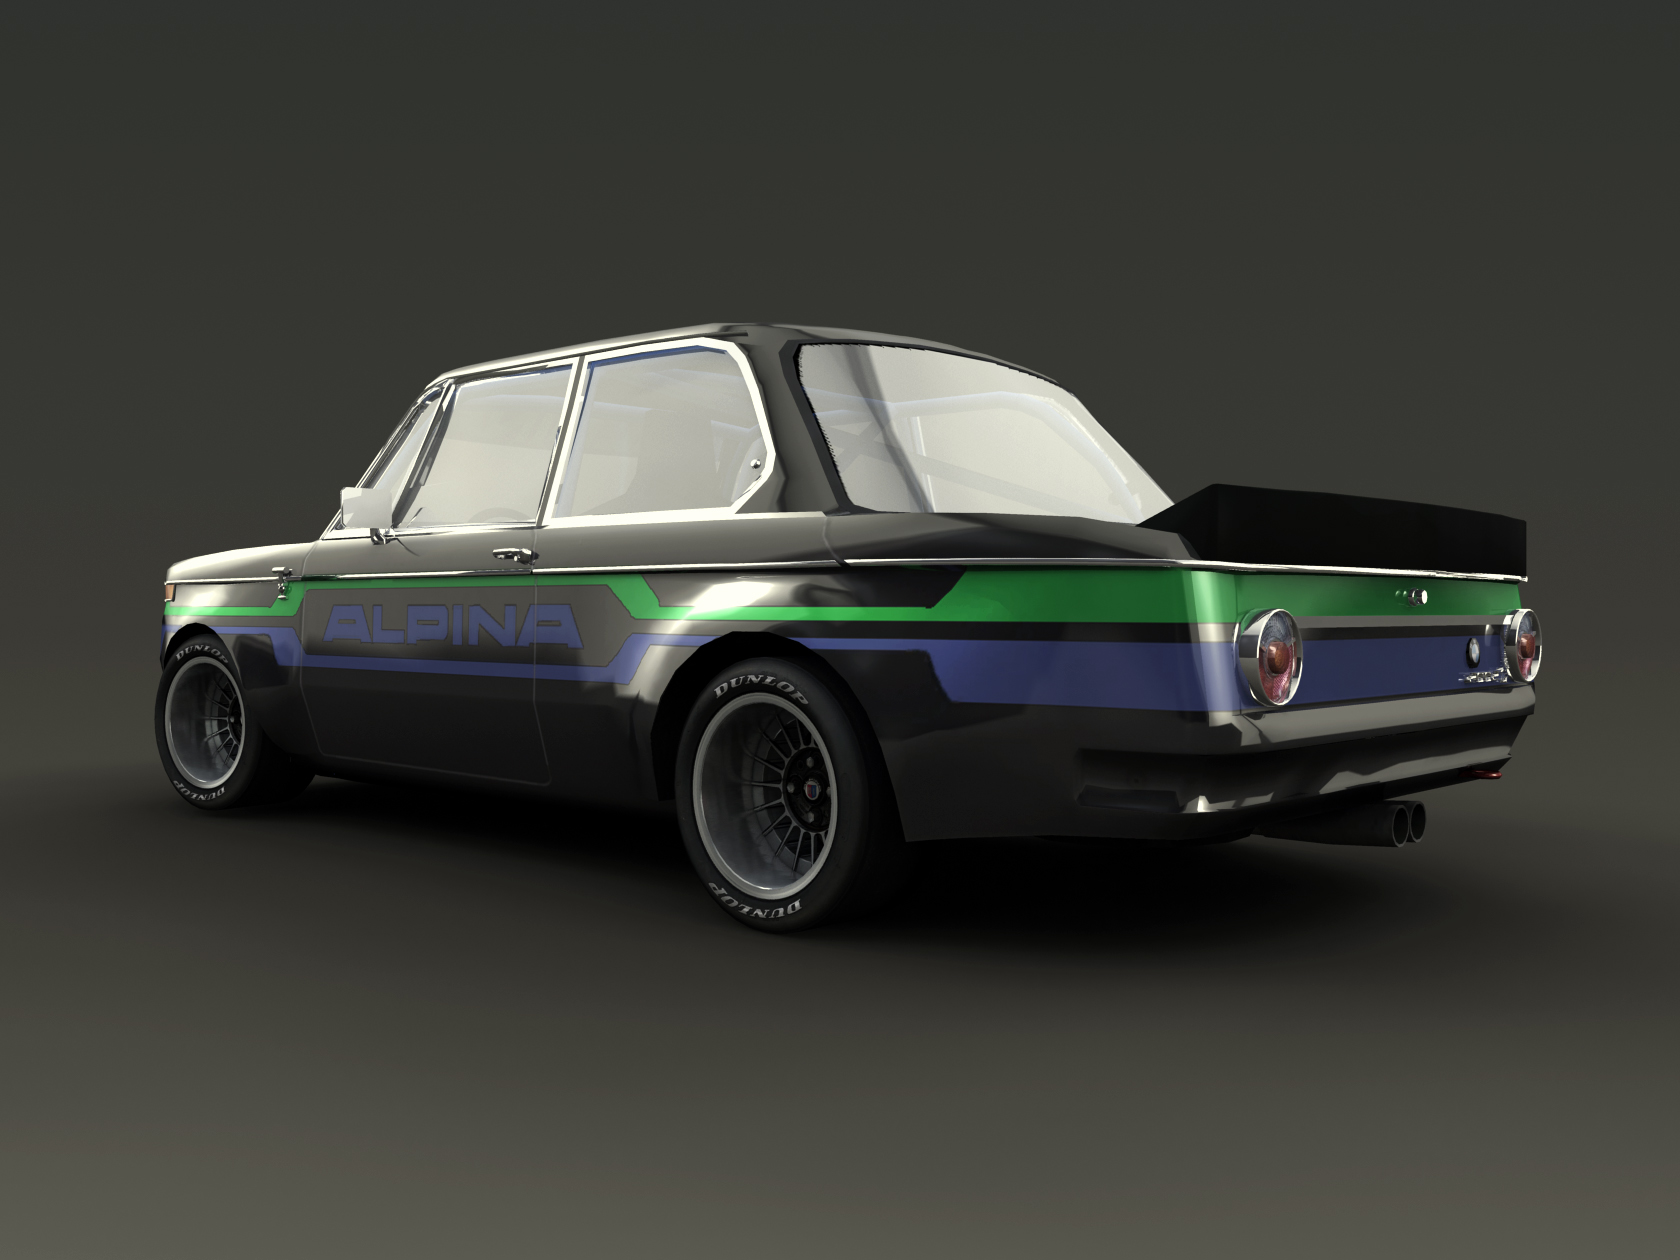 Bmw 2002 1973 Review Amazing Pictures And Images Look